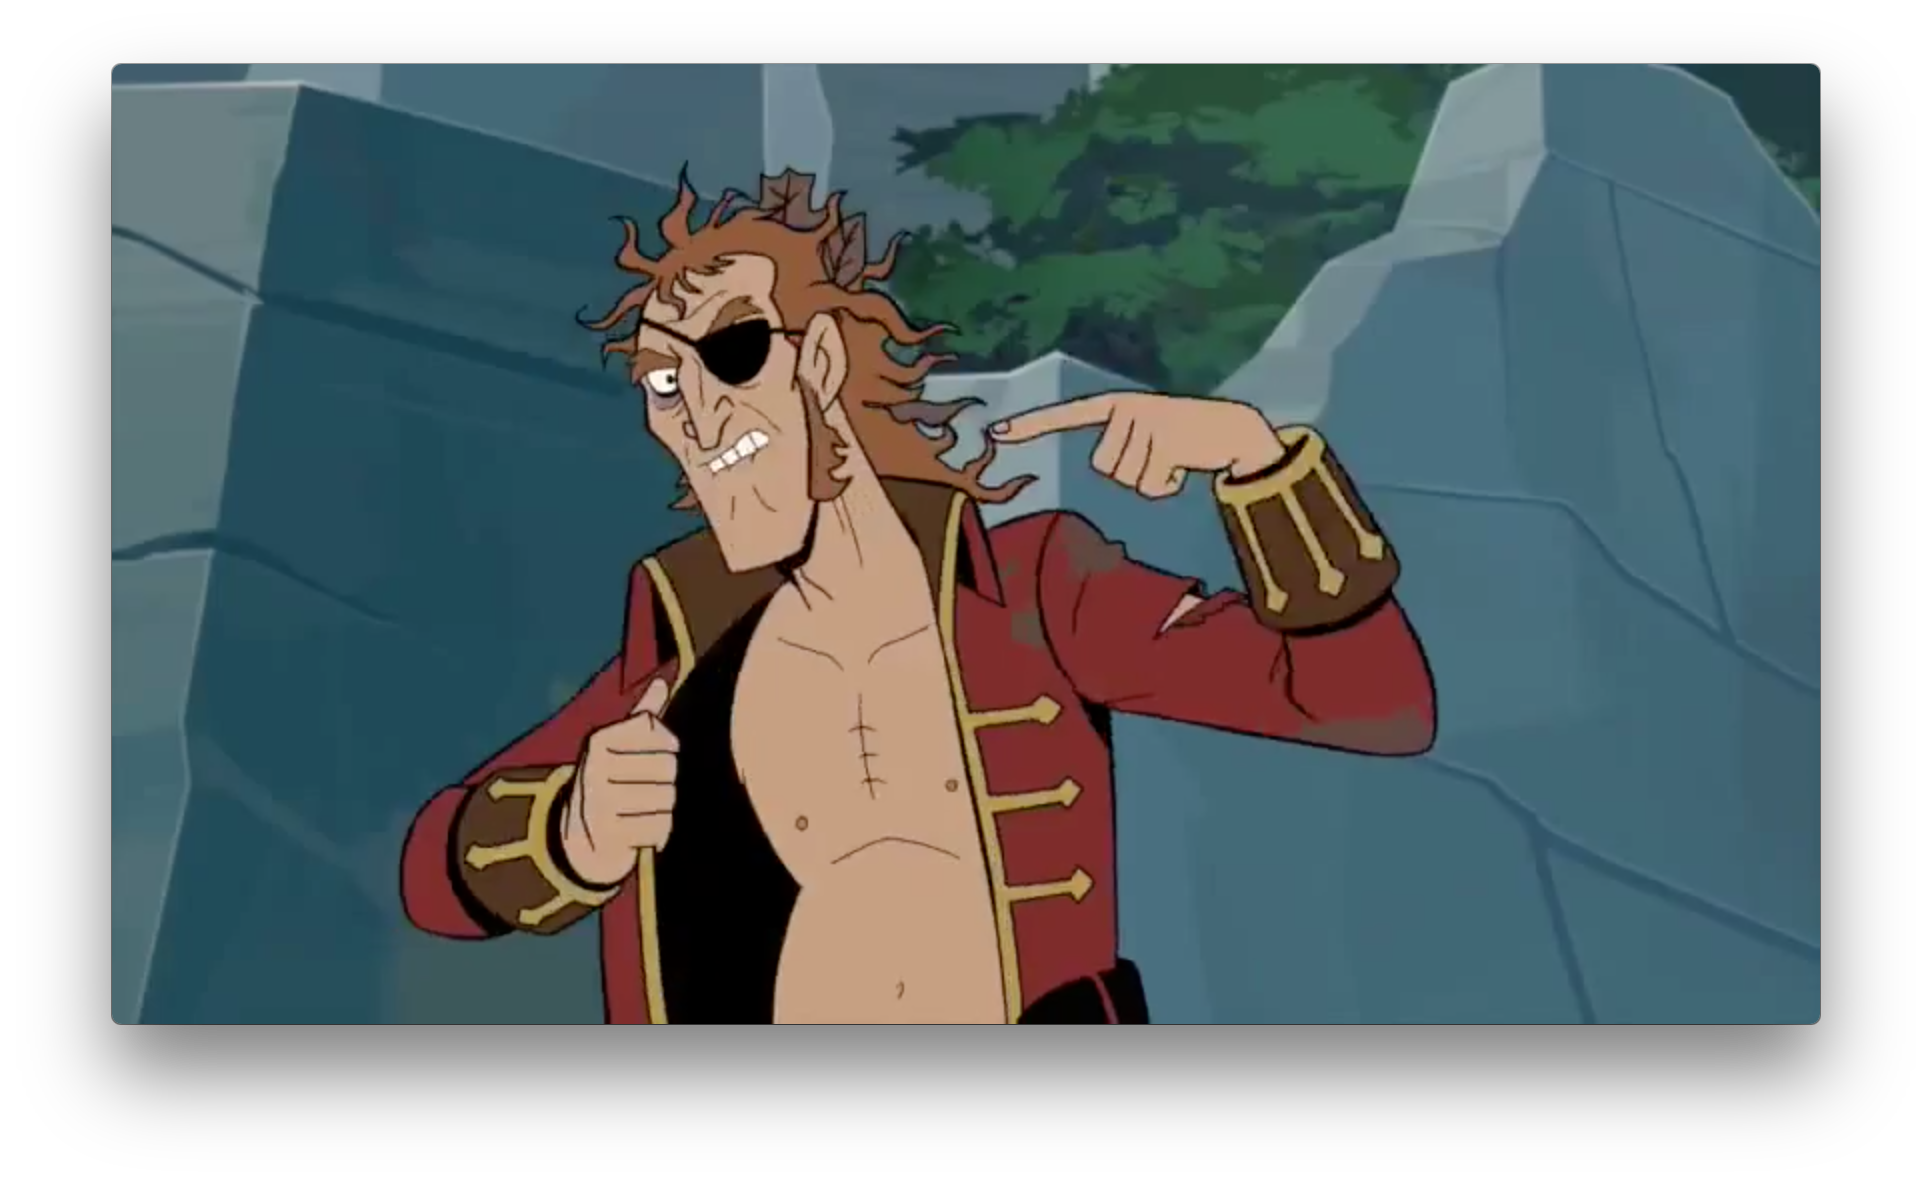 The Pirate Captain doesn't look like he's dealing with J.J.'s death very well. The chaotic hair, strained face, and endless pointing to the neck are signature signs of a dart addict in relapse.